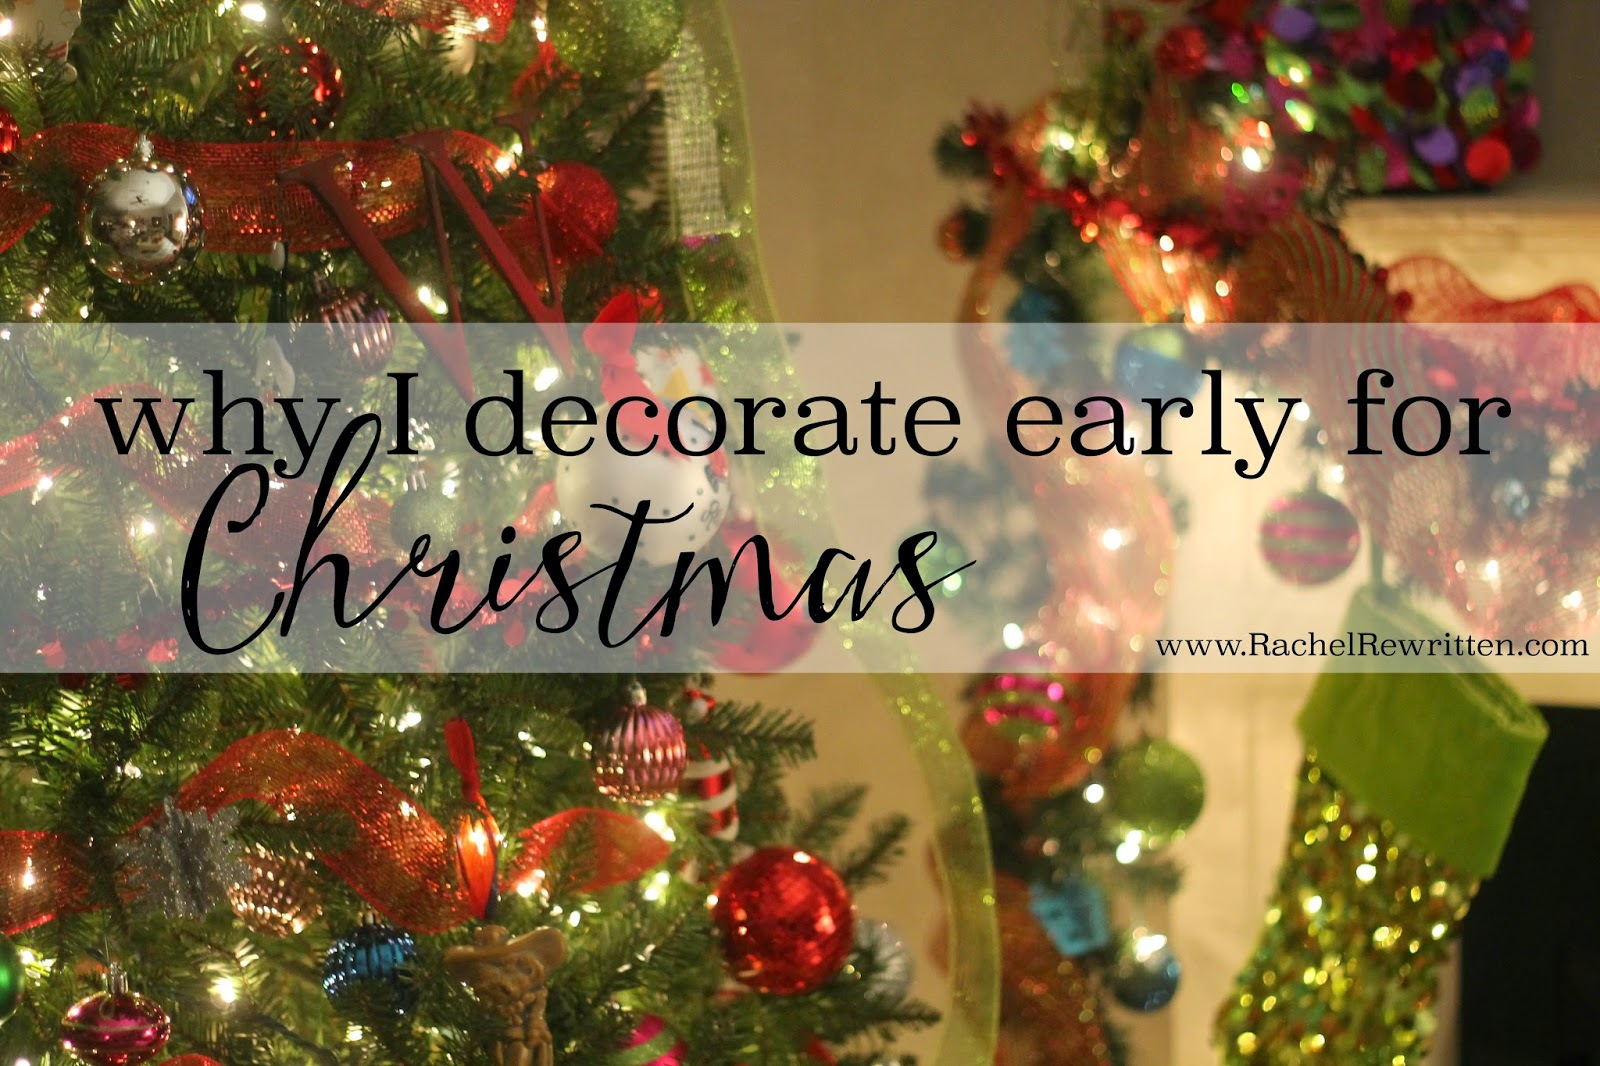 Decorations For Christmas.Why I Decorate Early For Christmas Rachel Rewritten